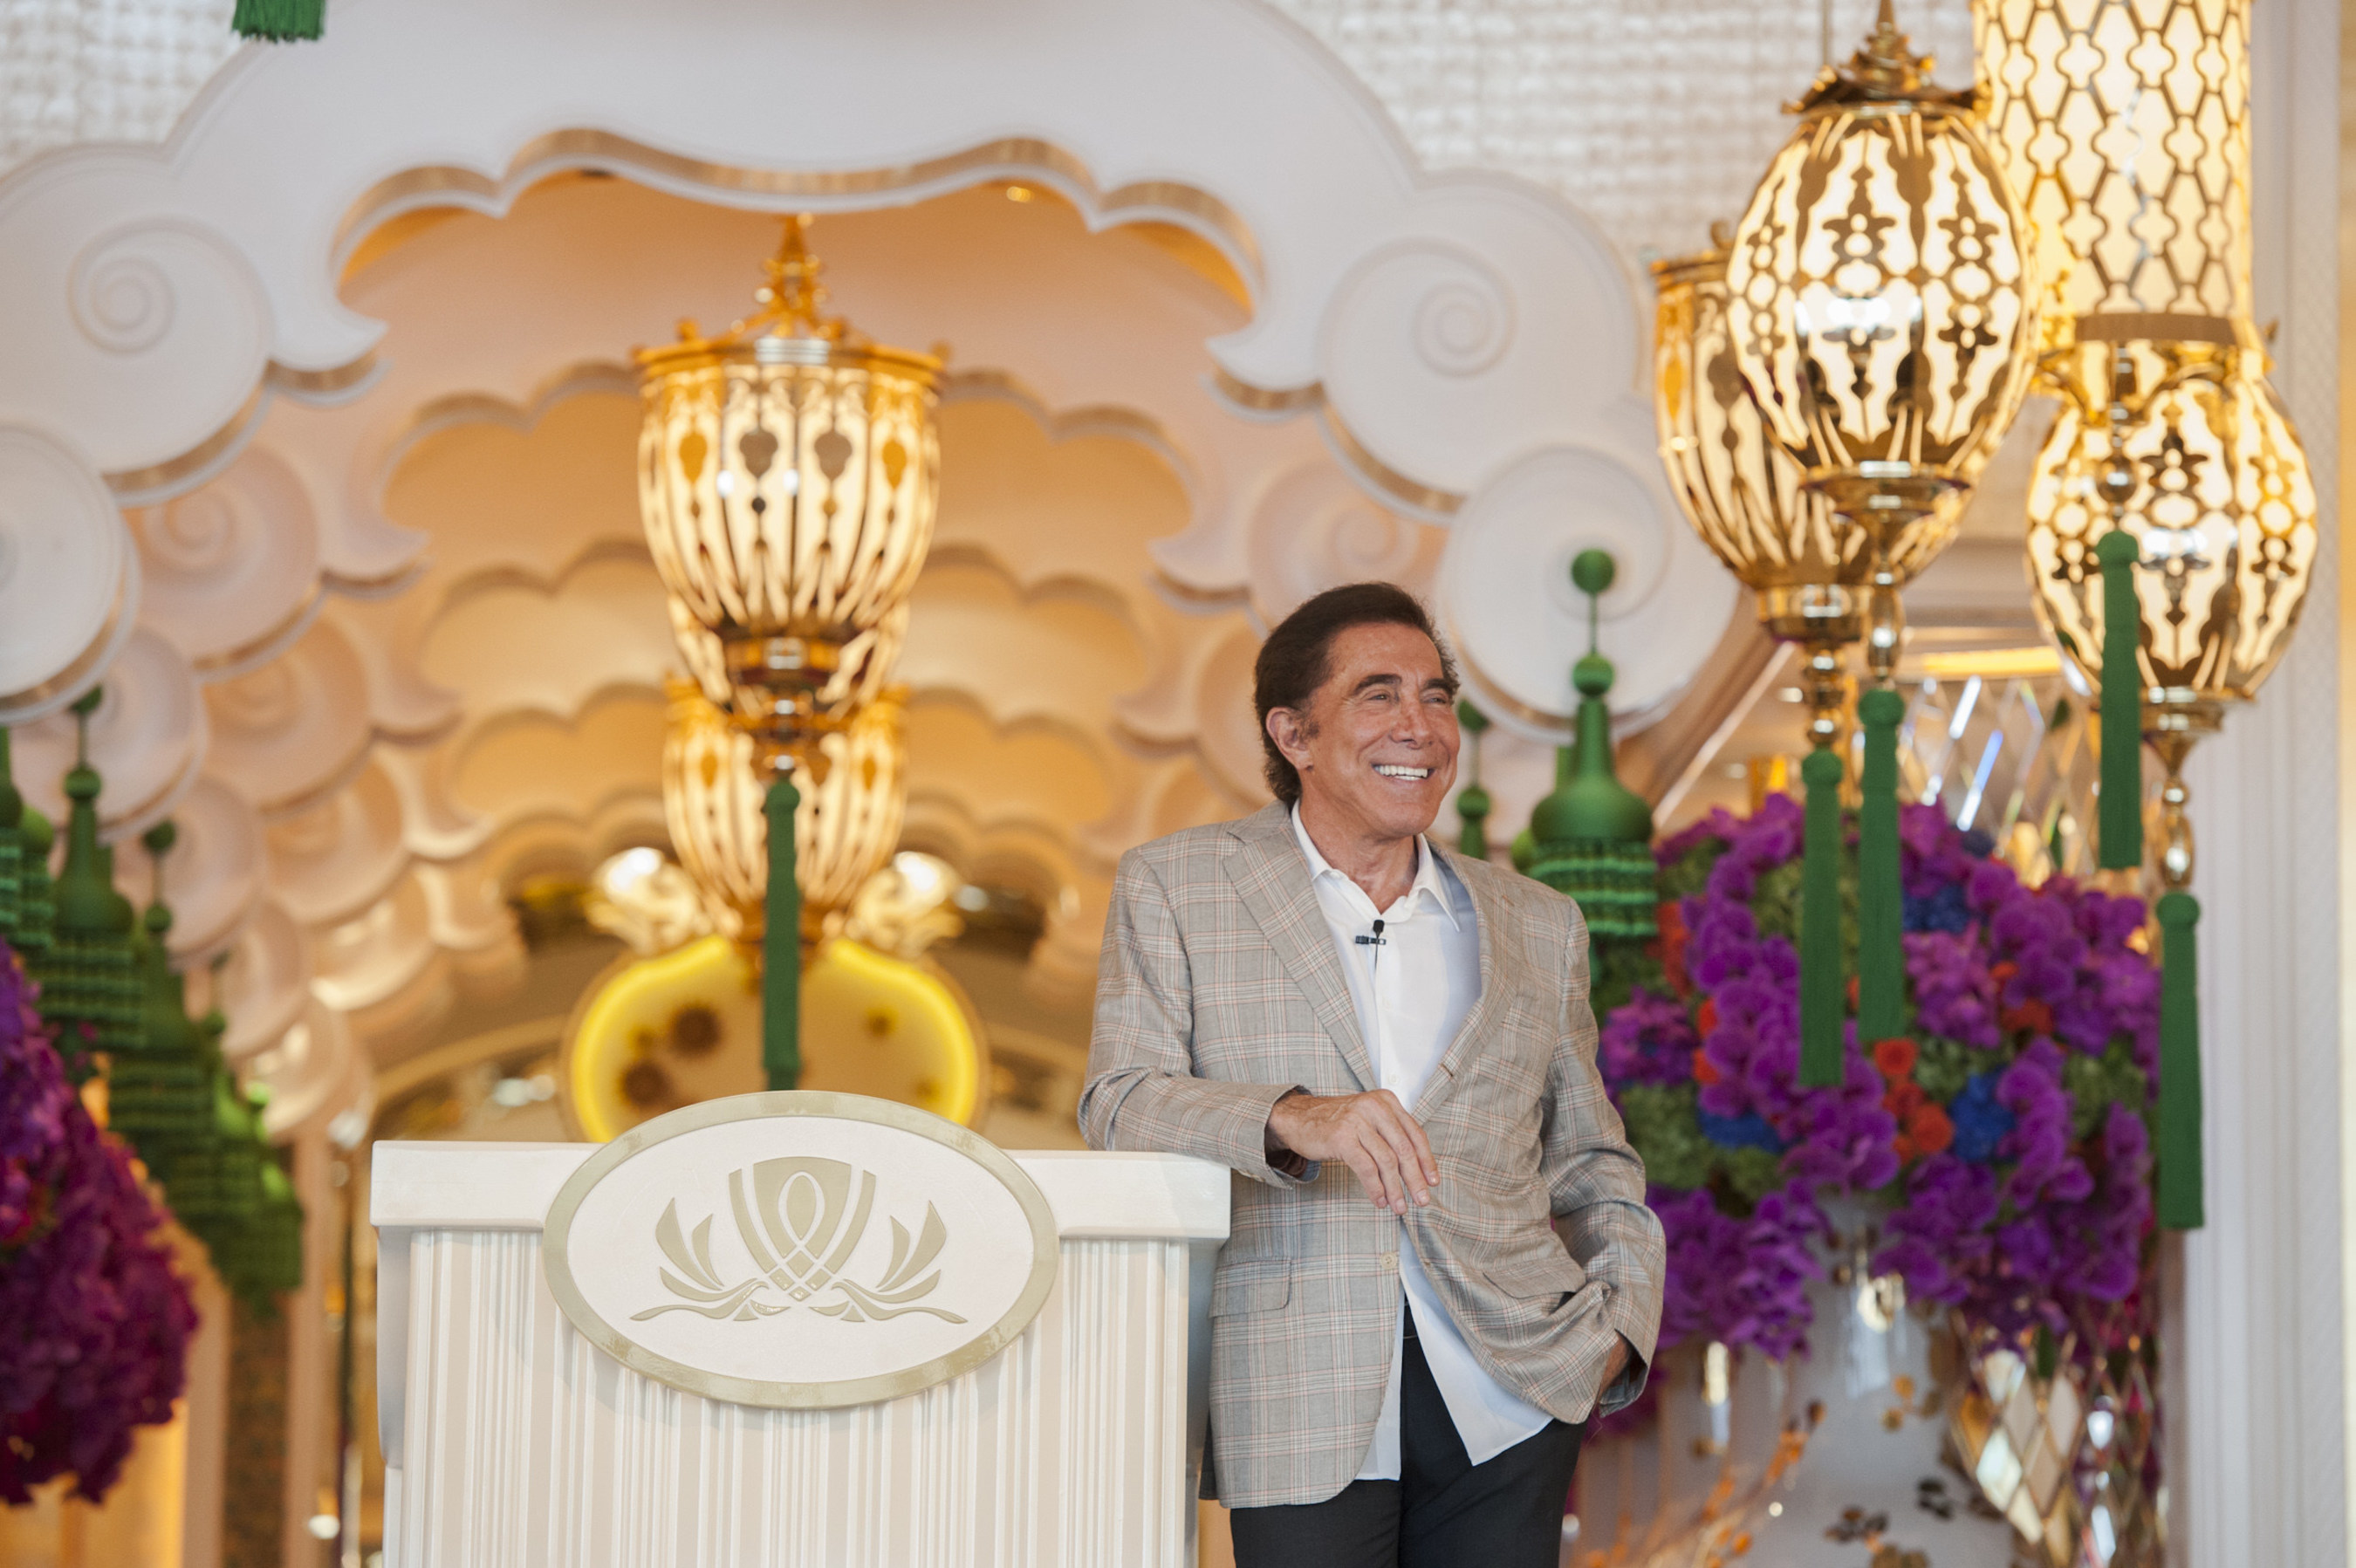 Steve Wynn hosted a press conference ahead of the opening of his new resort, Wynn Palace, in Cotai, Macau on August 22, 2016.